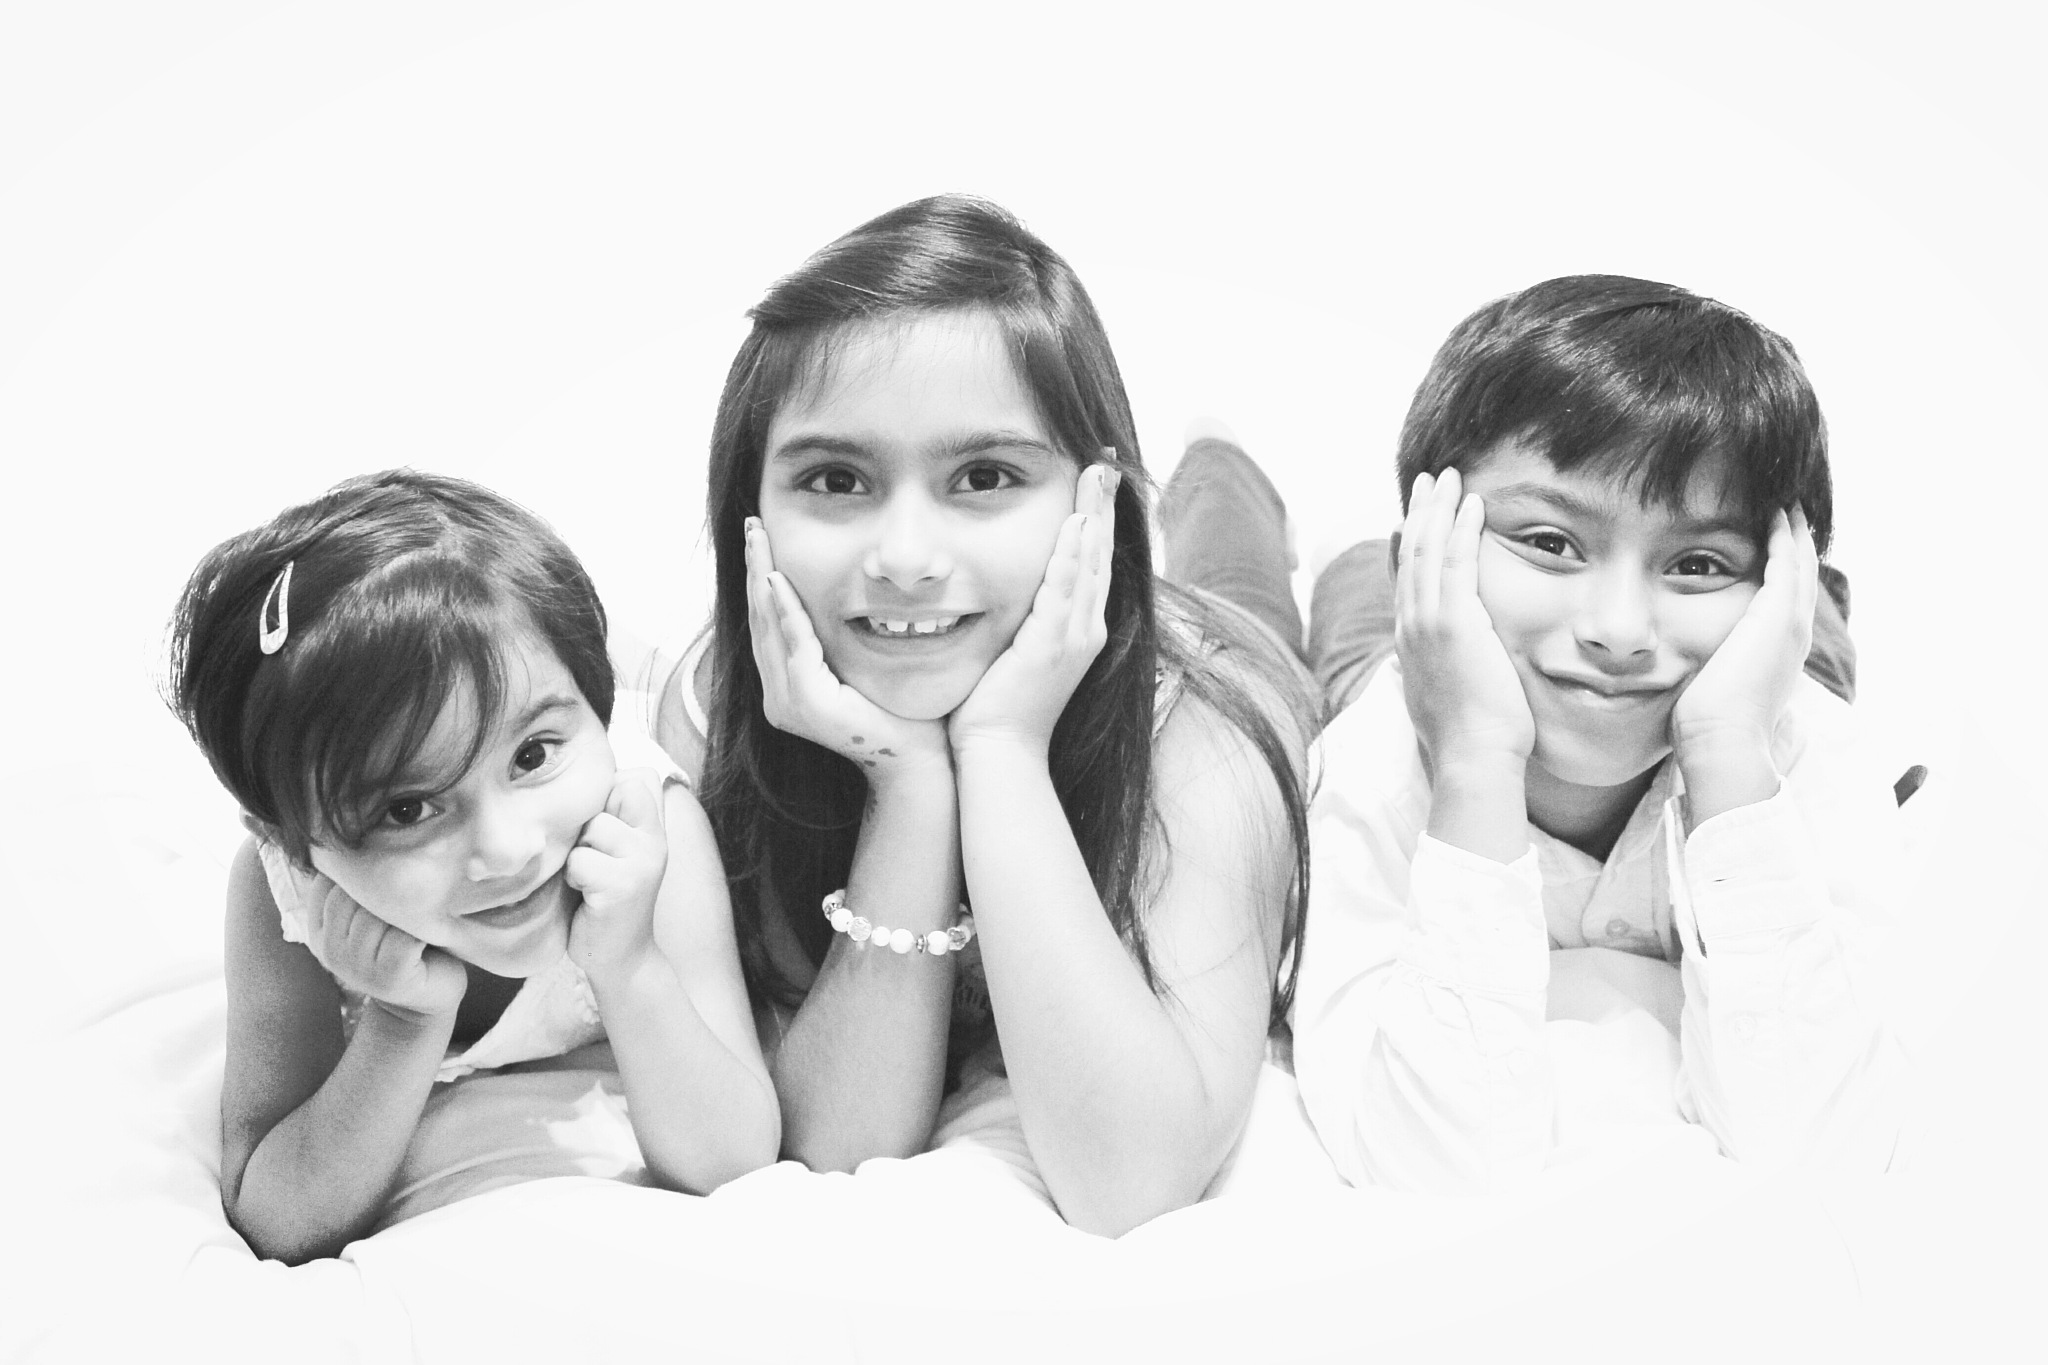 My three litle cousins by Rohal Aliee